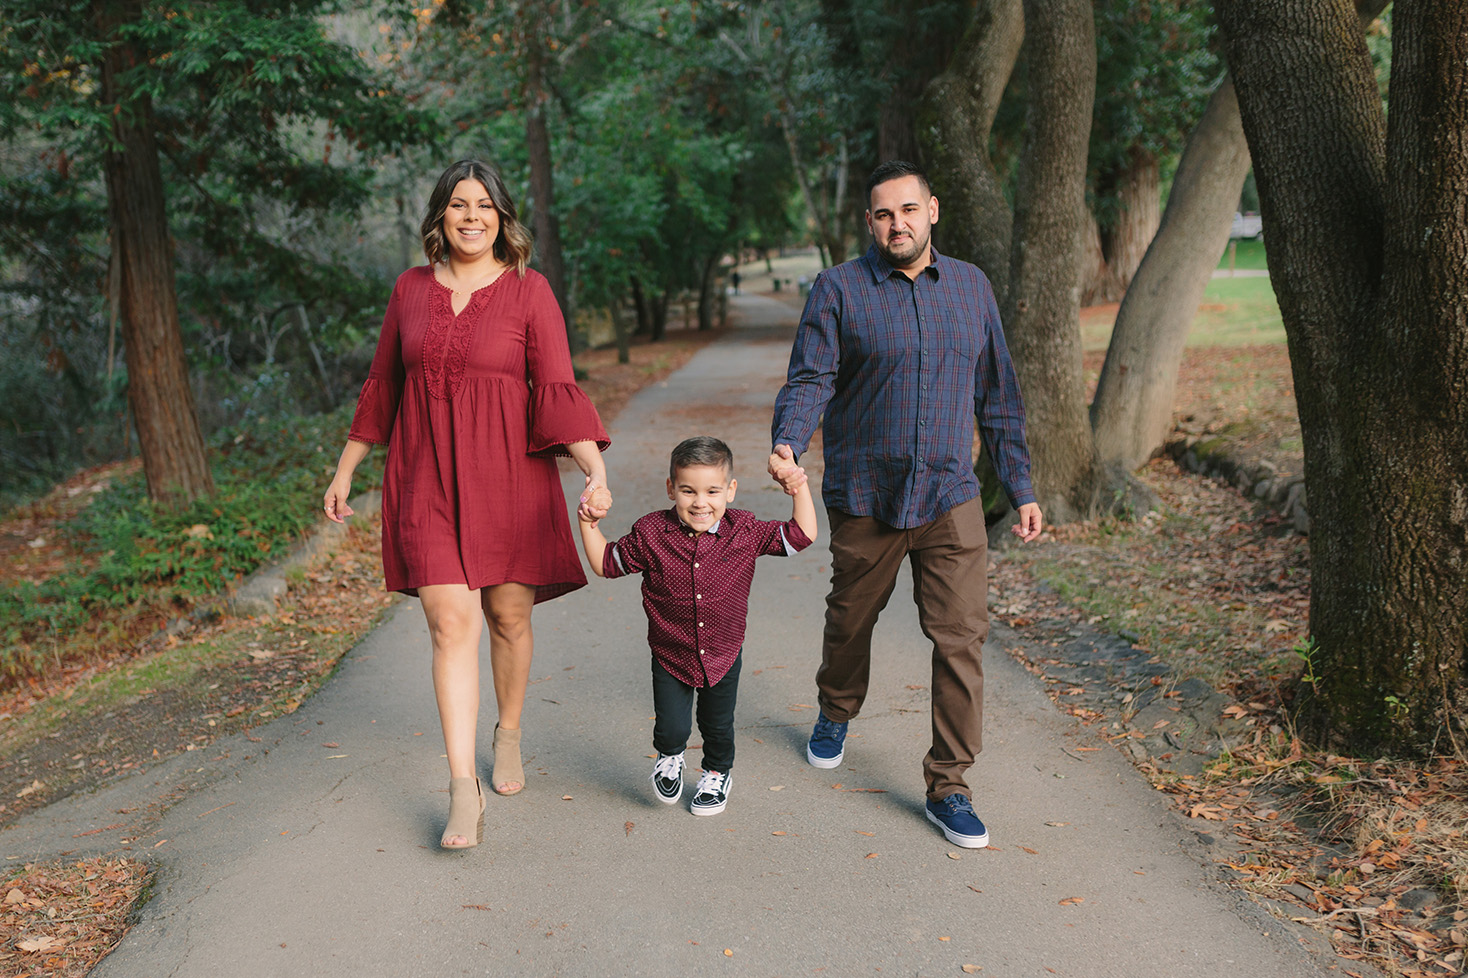 "Danielle Terrazas - Whenever I have important moments that I need captured my go to photographer is Ali! She not only captures my family the way I love but she makes sure every last detail is perfect. Not because she's ""being paid"" but because she genuinely cares. She knows I'm the mom that's going to worry if my son's pant leg is up, or if my dress isn't sitting just right, or if my husbands collar is slightly off. Her attention to detail on top of her willingness to please puts her in a league of her own. I'm always lost when it comes to what to wear or how to dress my family. Ali took the time to help me figure out outfits for not knot myself but for my son and husband as well. She went above and beyond to make sure I was 100% comfortable and felt good before taking our pictures. She takes pride in her work and it shows. She is amazing and will always be my go to for all of my photography needs!"